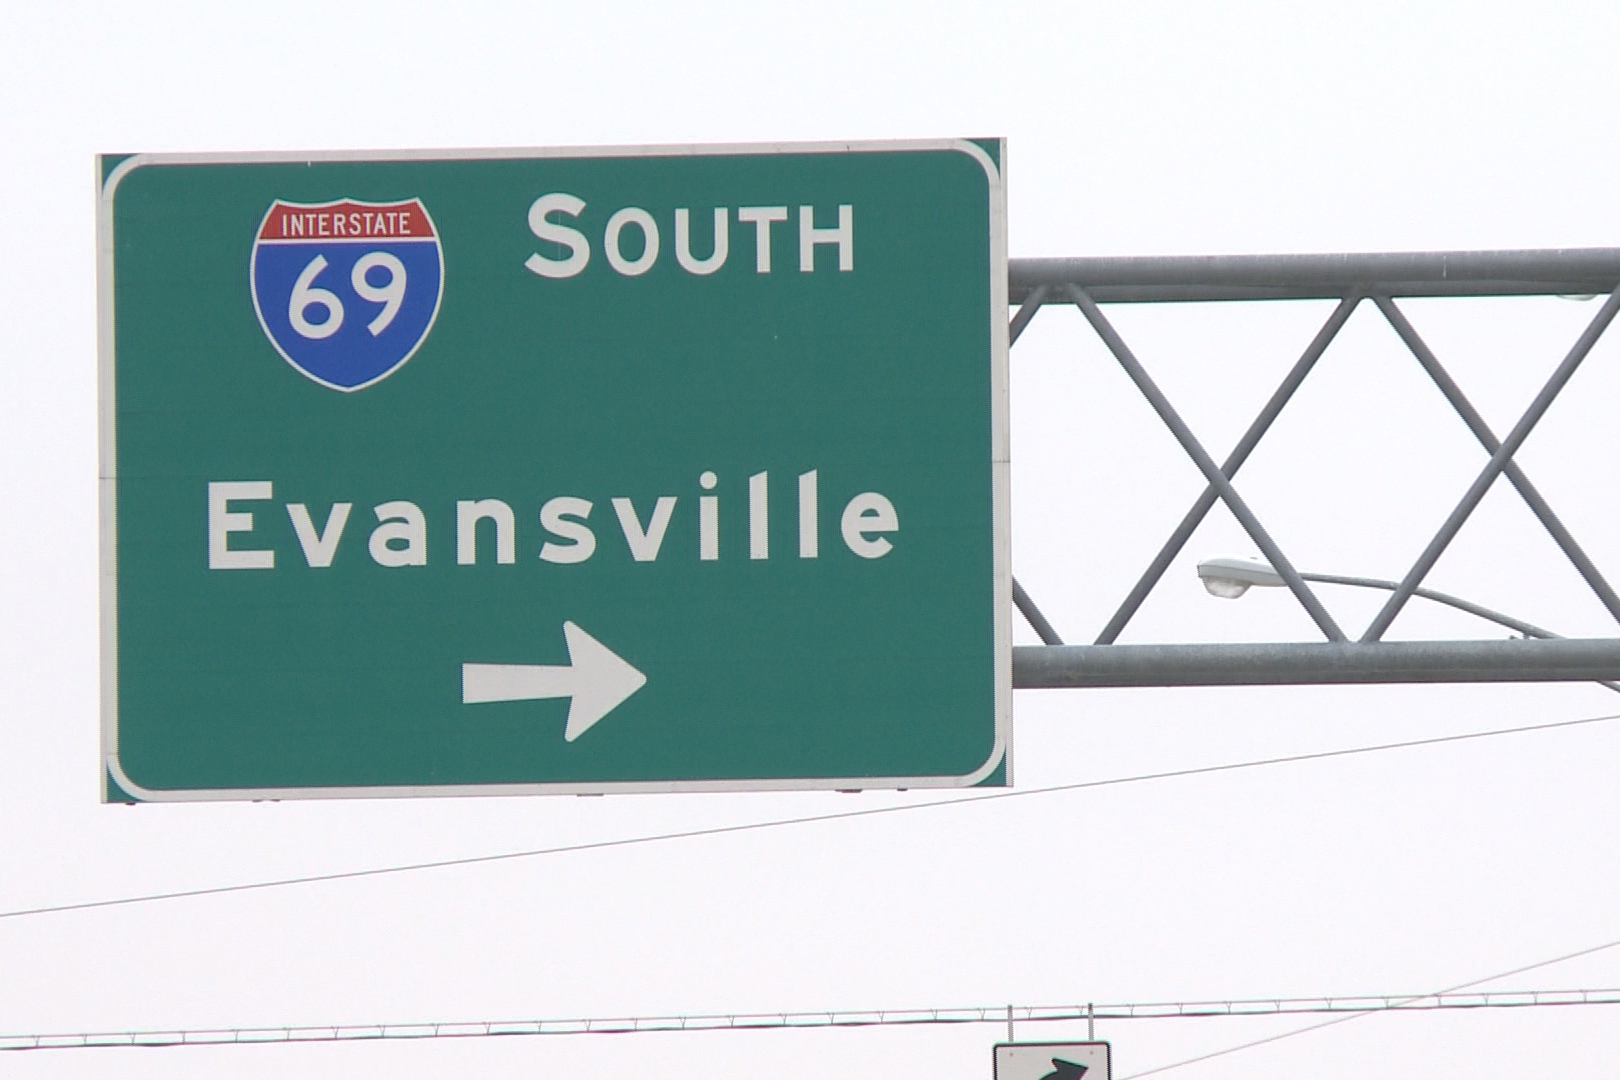 69 South sign